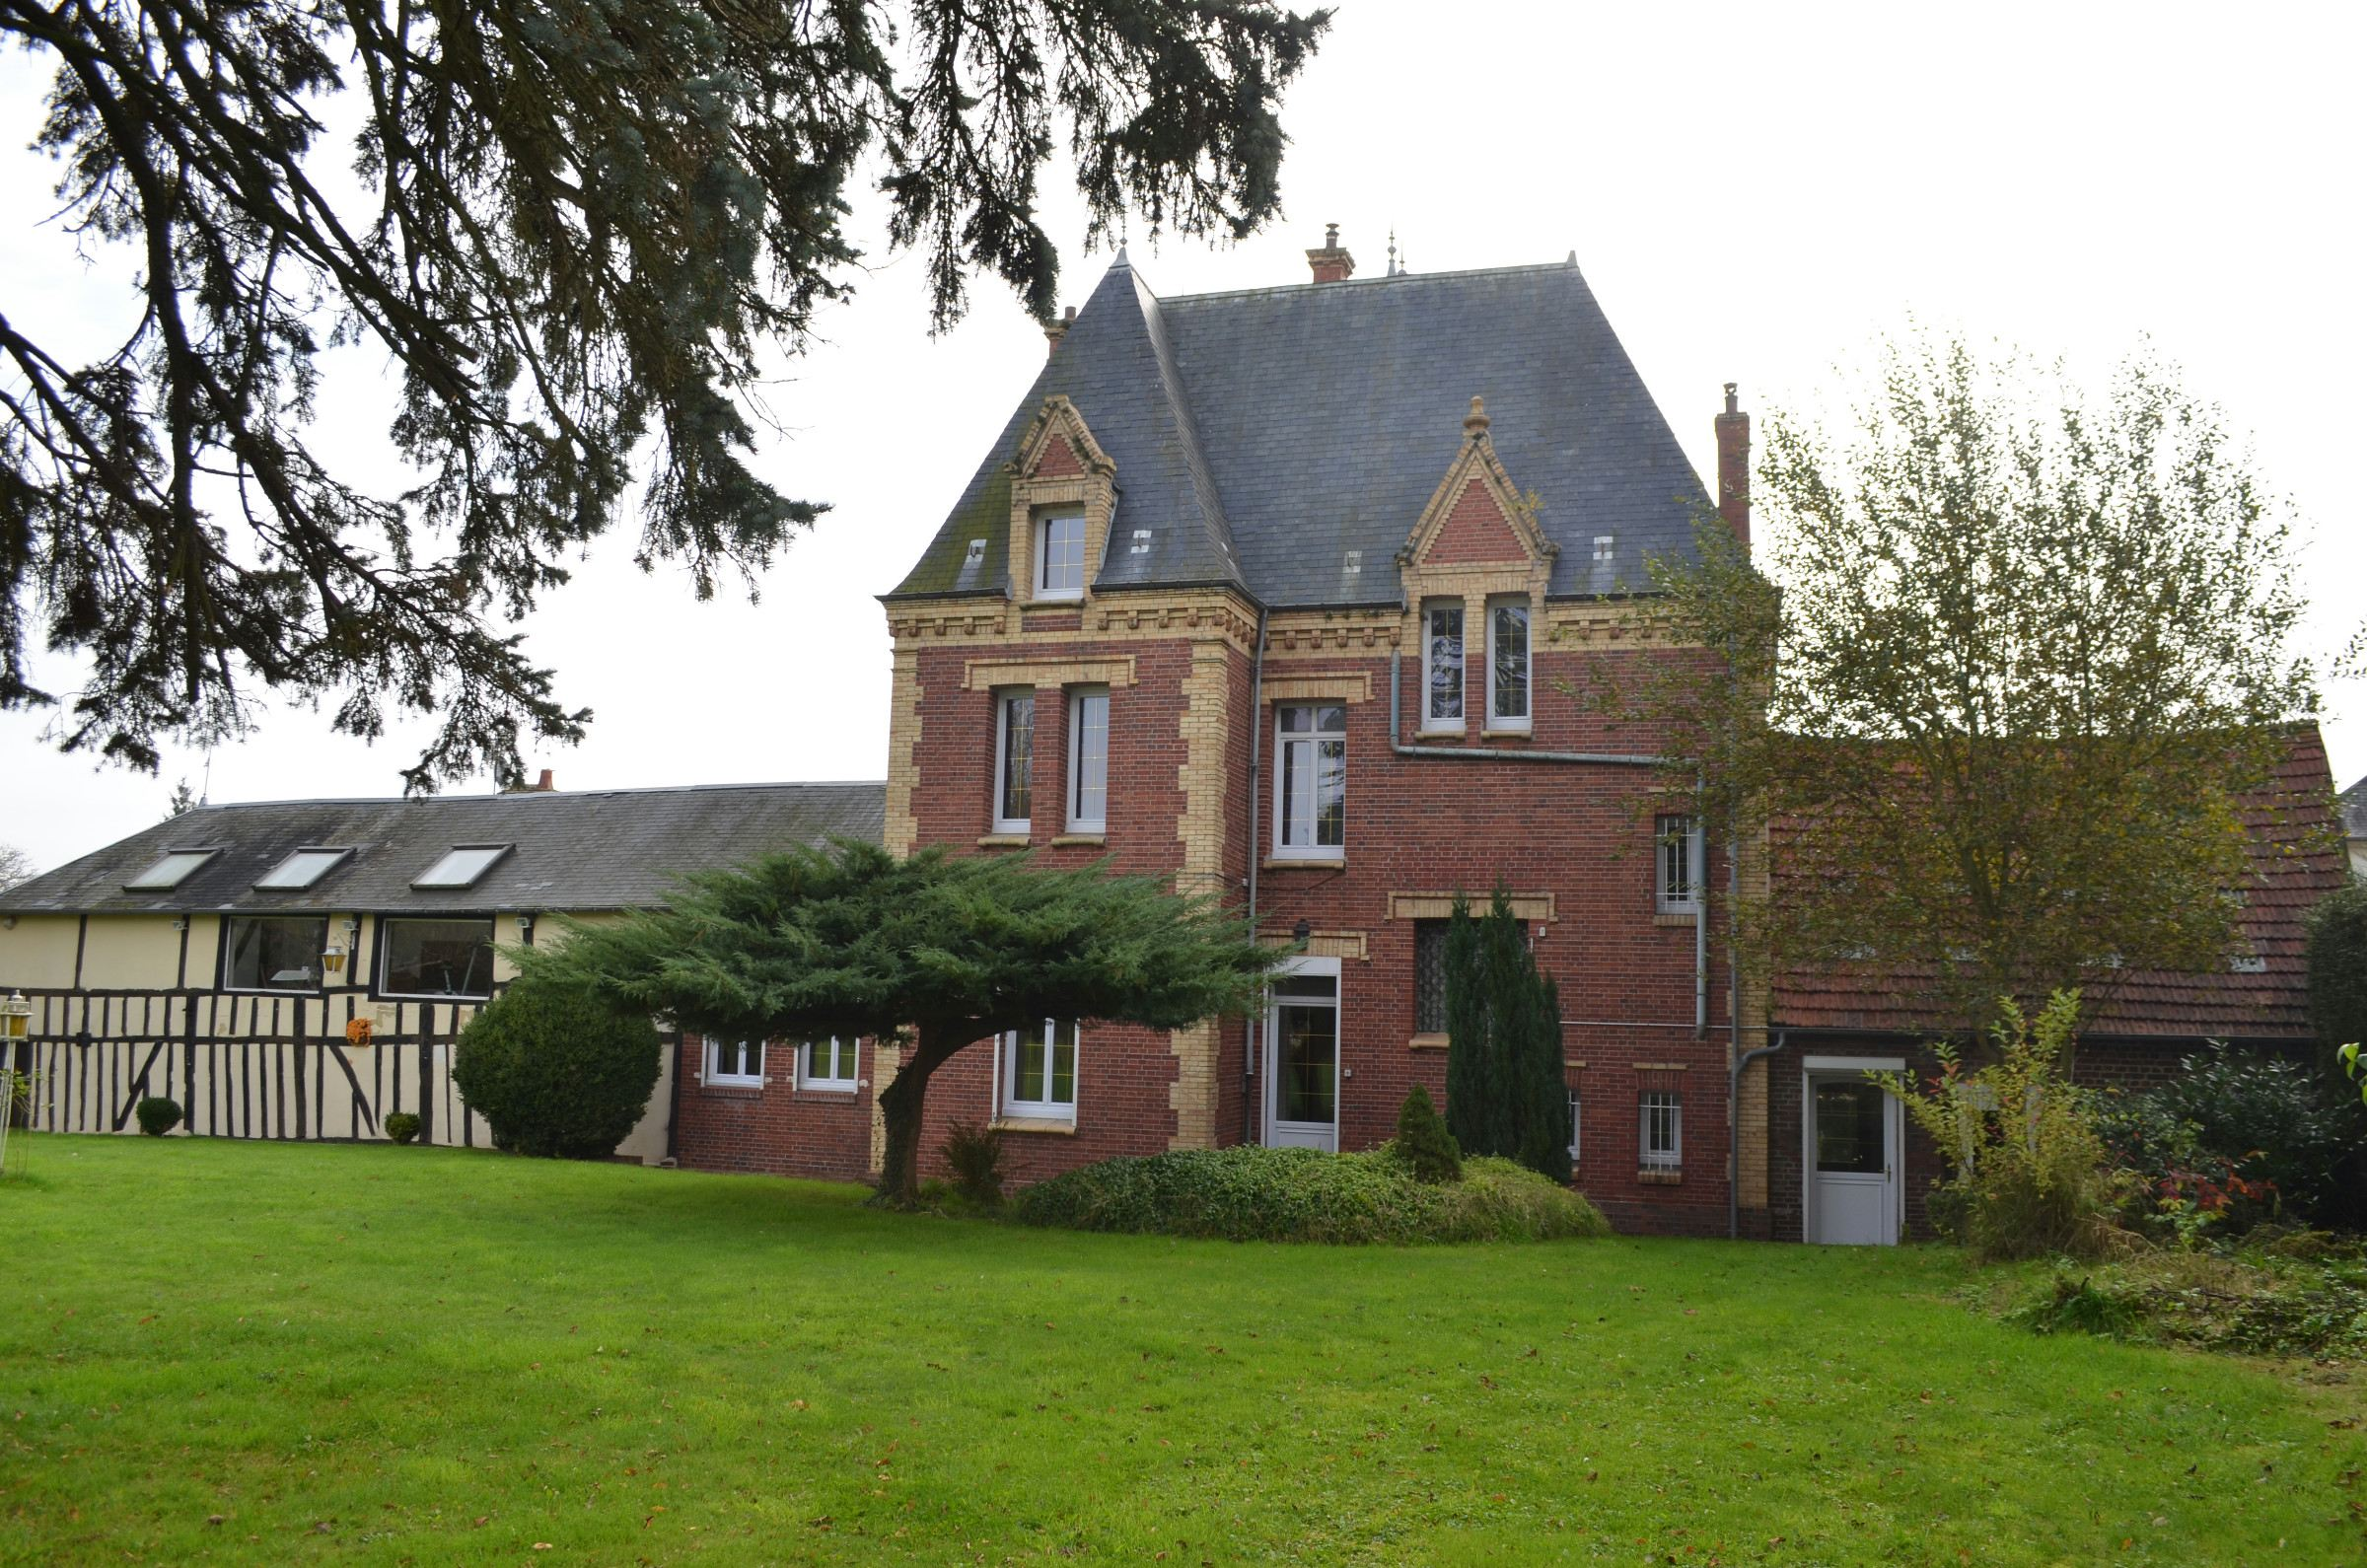 Property For Sale at Near Beauvais, renovated property of XIXth